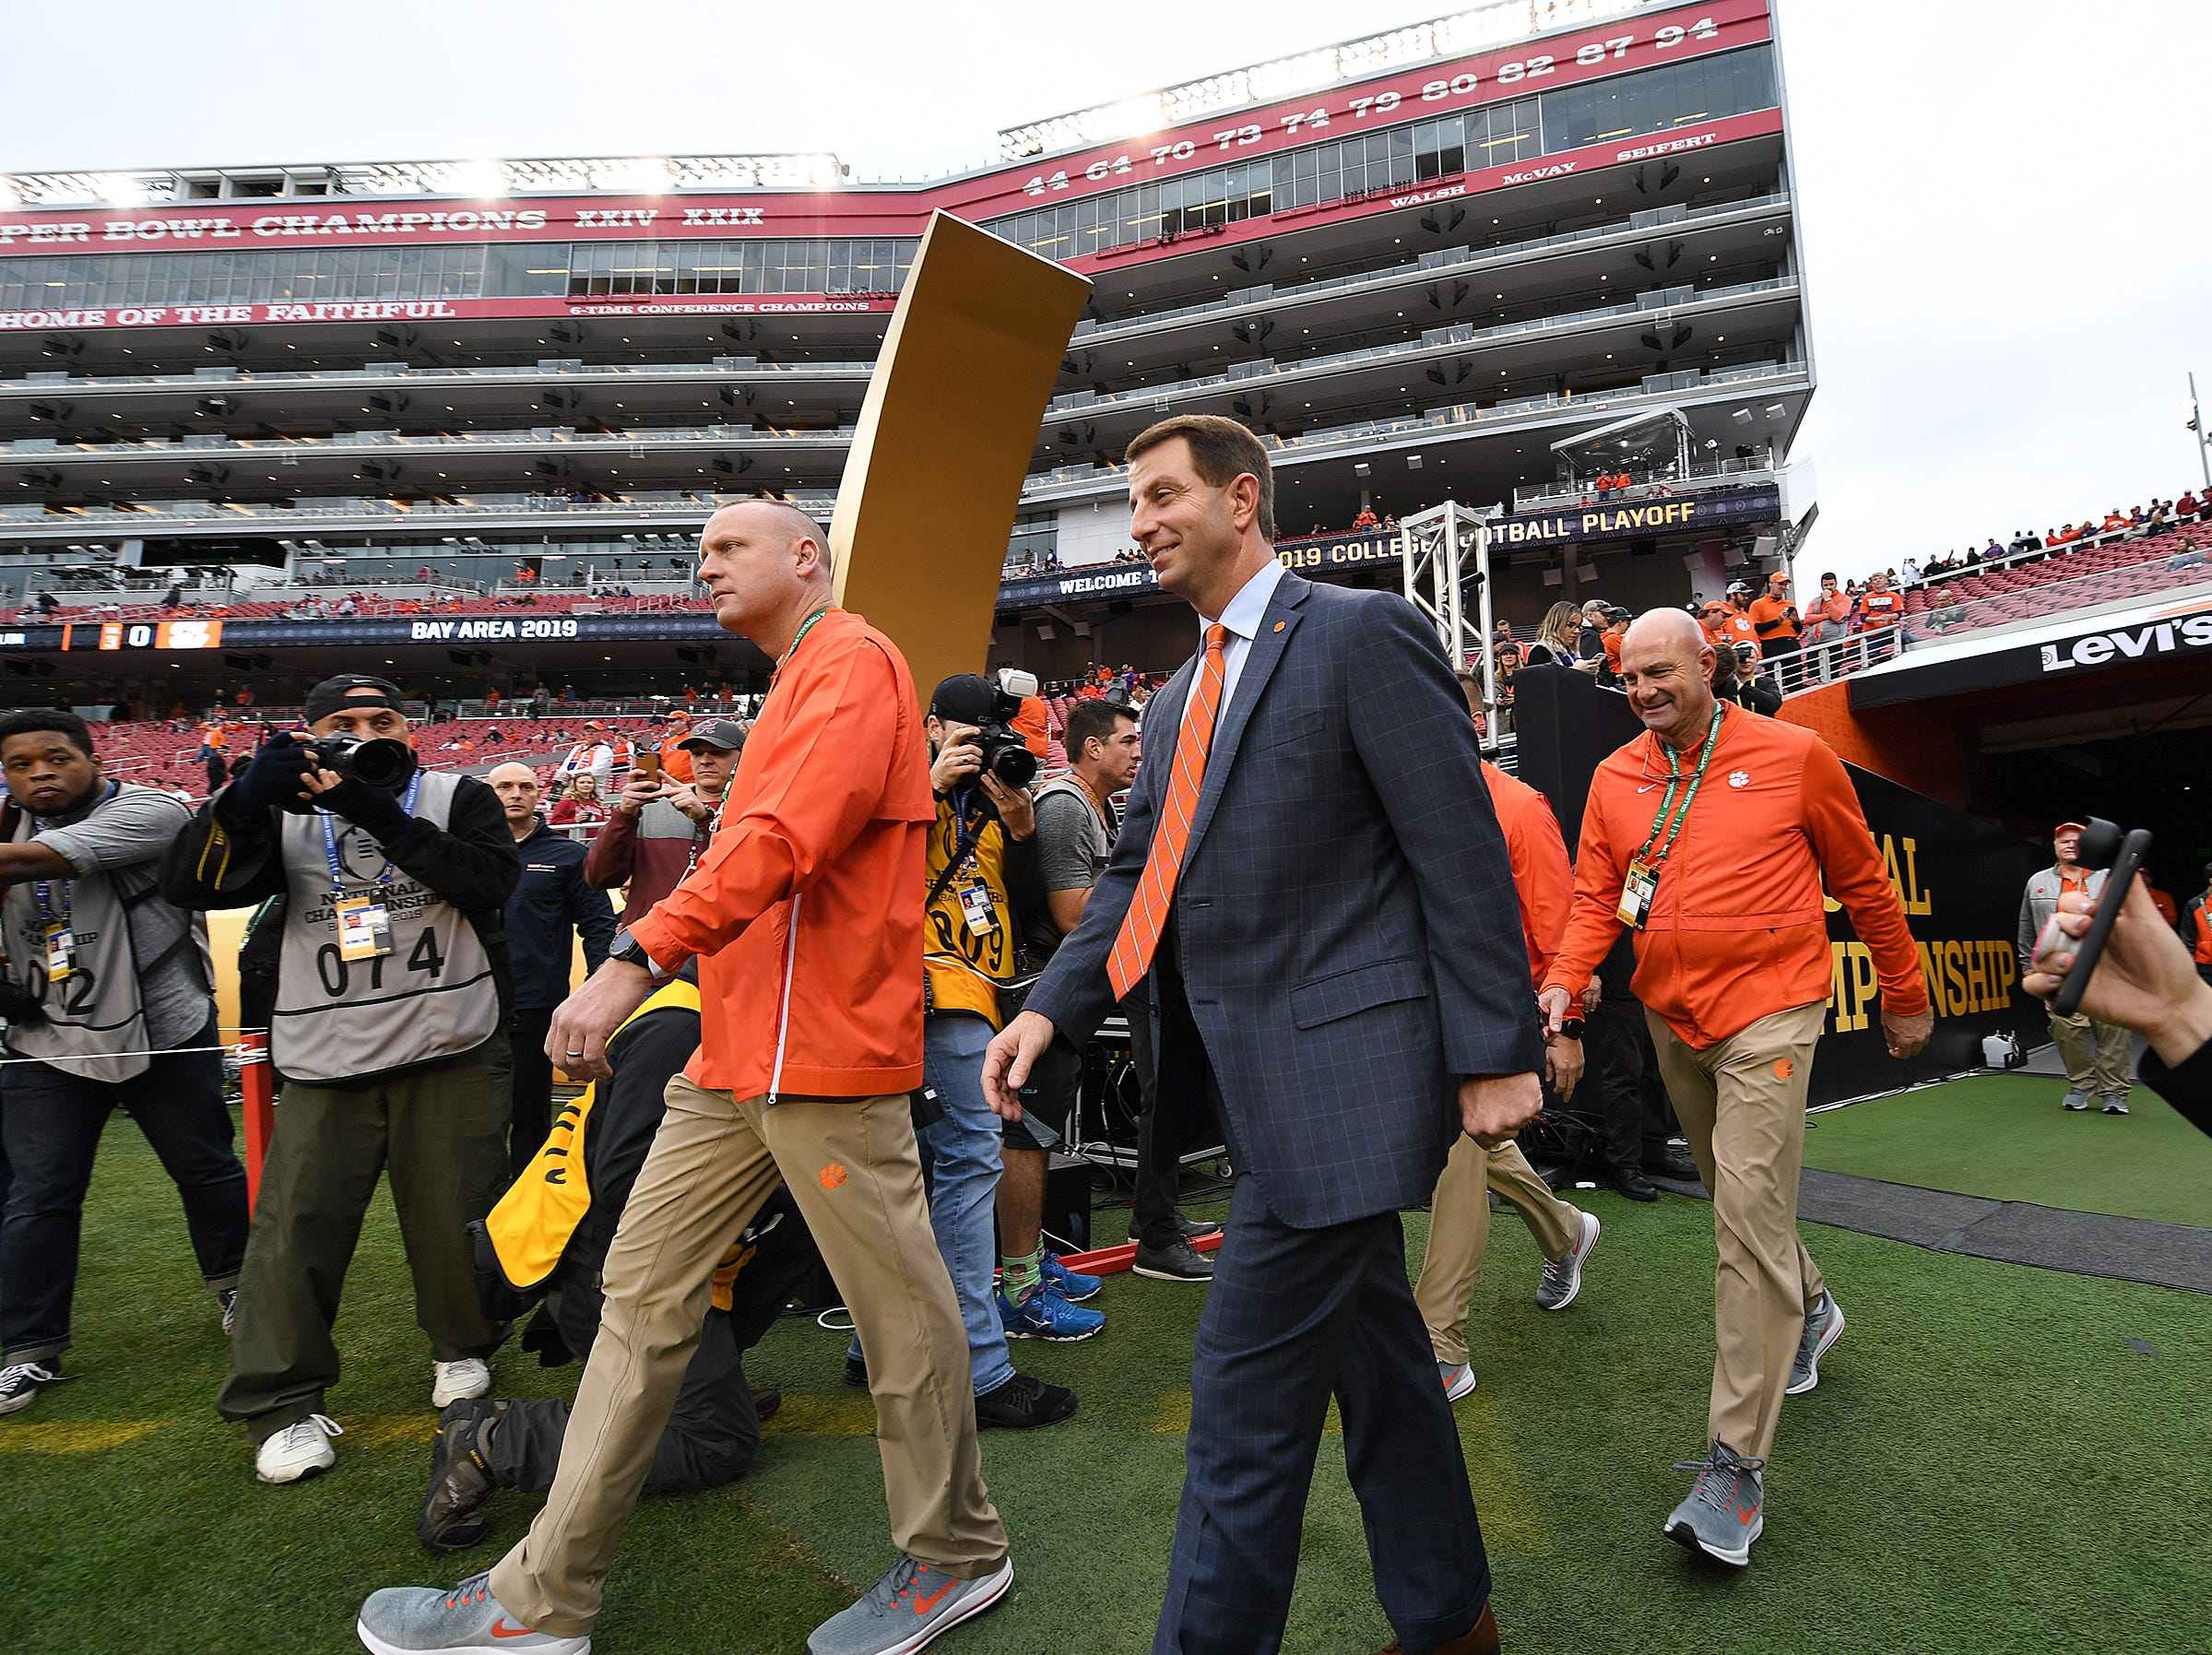 Clemson head coach Dabo Swinney walks to the filed at Levi's Stadium in Santa Clara, CA Monday, January 7, 2019 after the team arrived for their game against Alabama in the College Football National Championship.